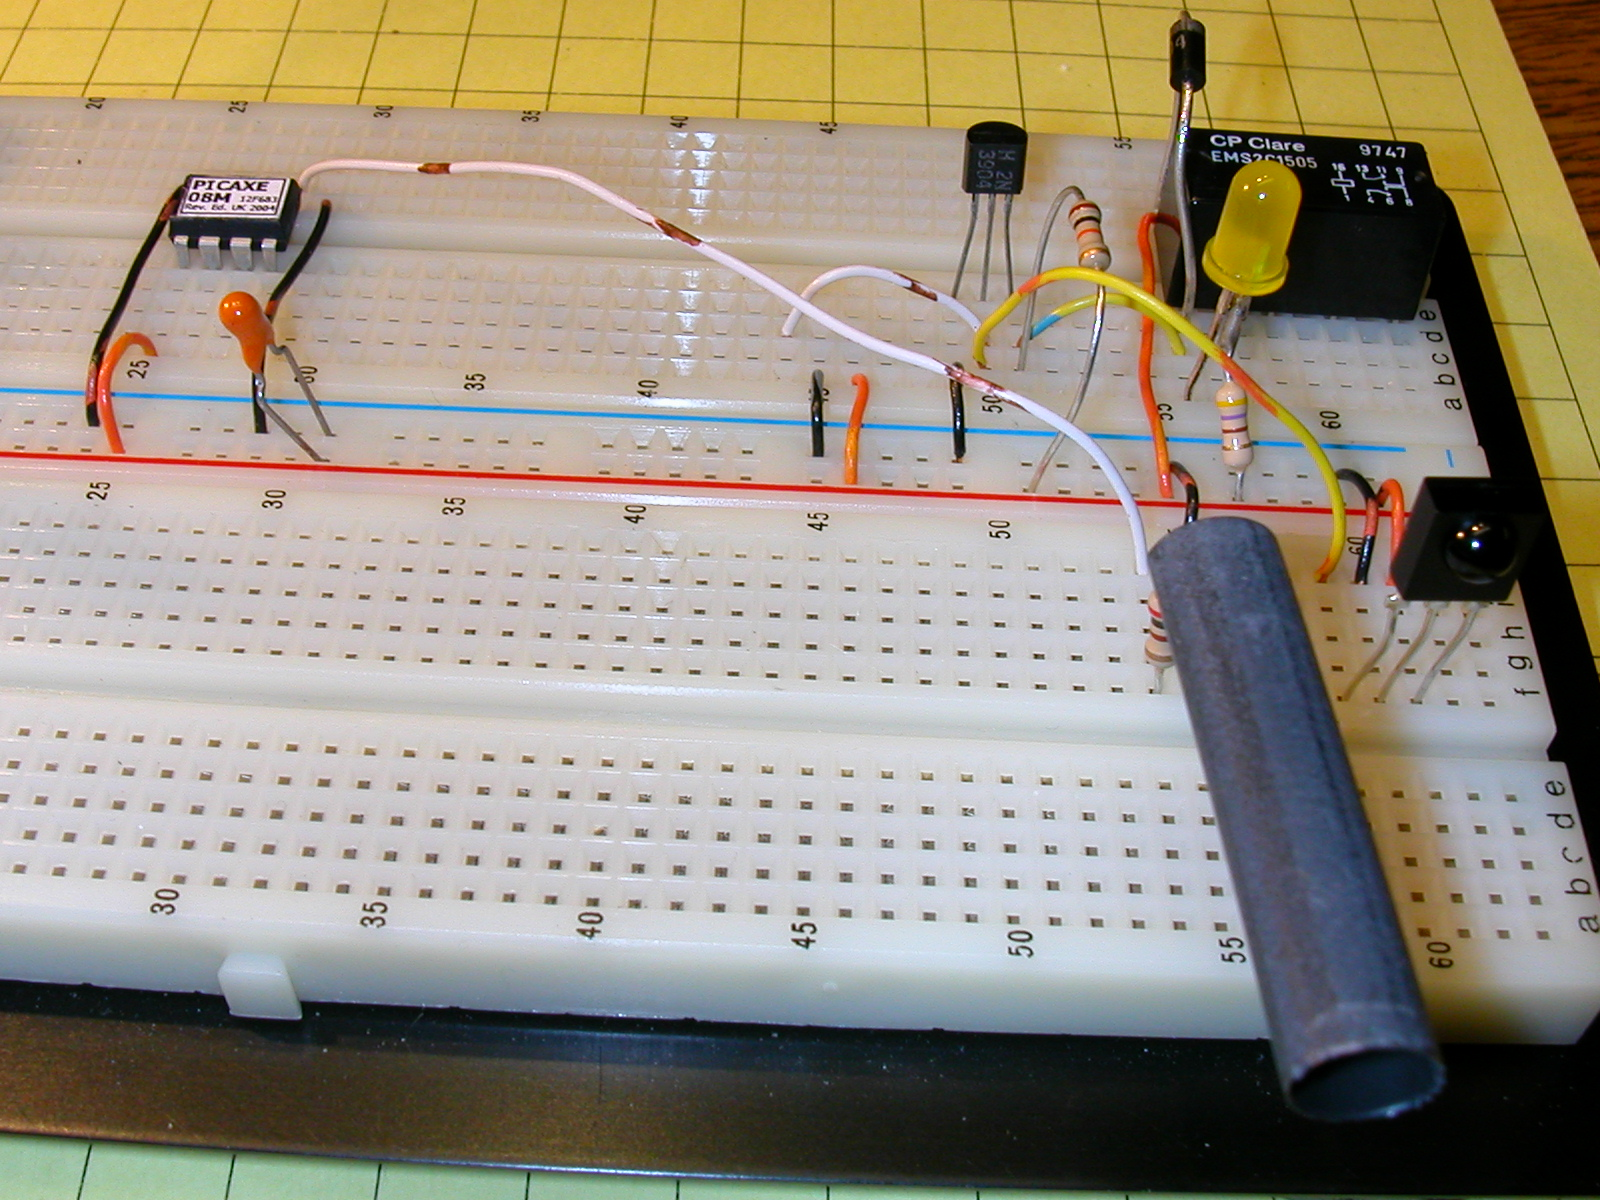 Pulsed Ir Sensor Infraredemitter38khz555timercircuitschematicgif In The Photo Below A Section Of Black Tubing Covers Sides Led So That Can Only Be Emitted To Front